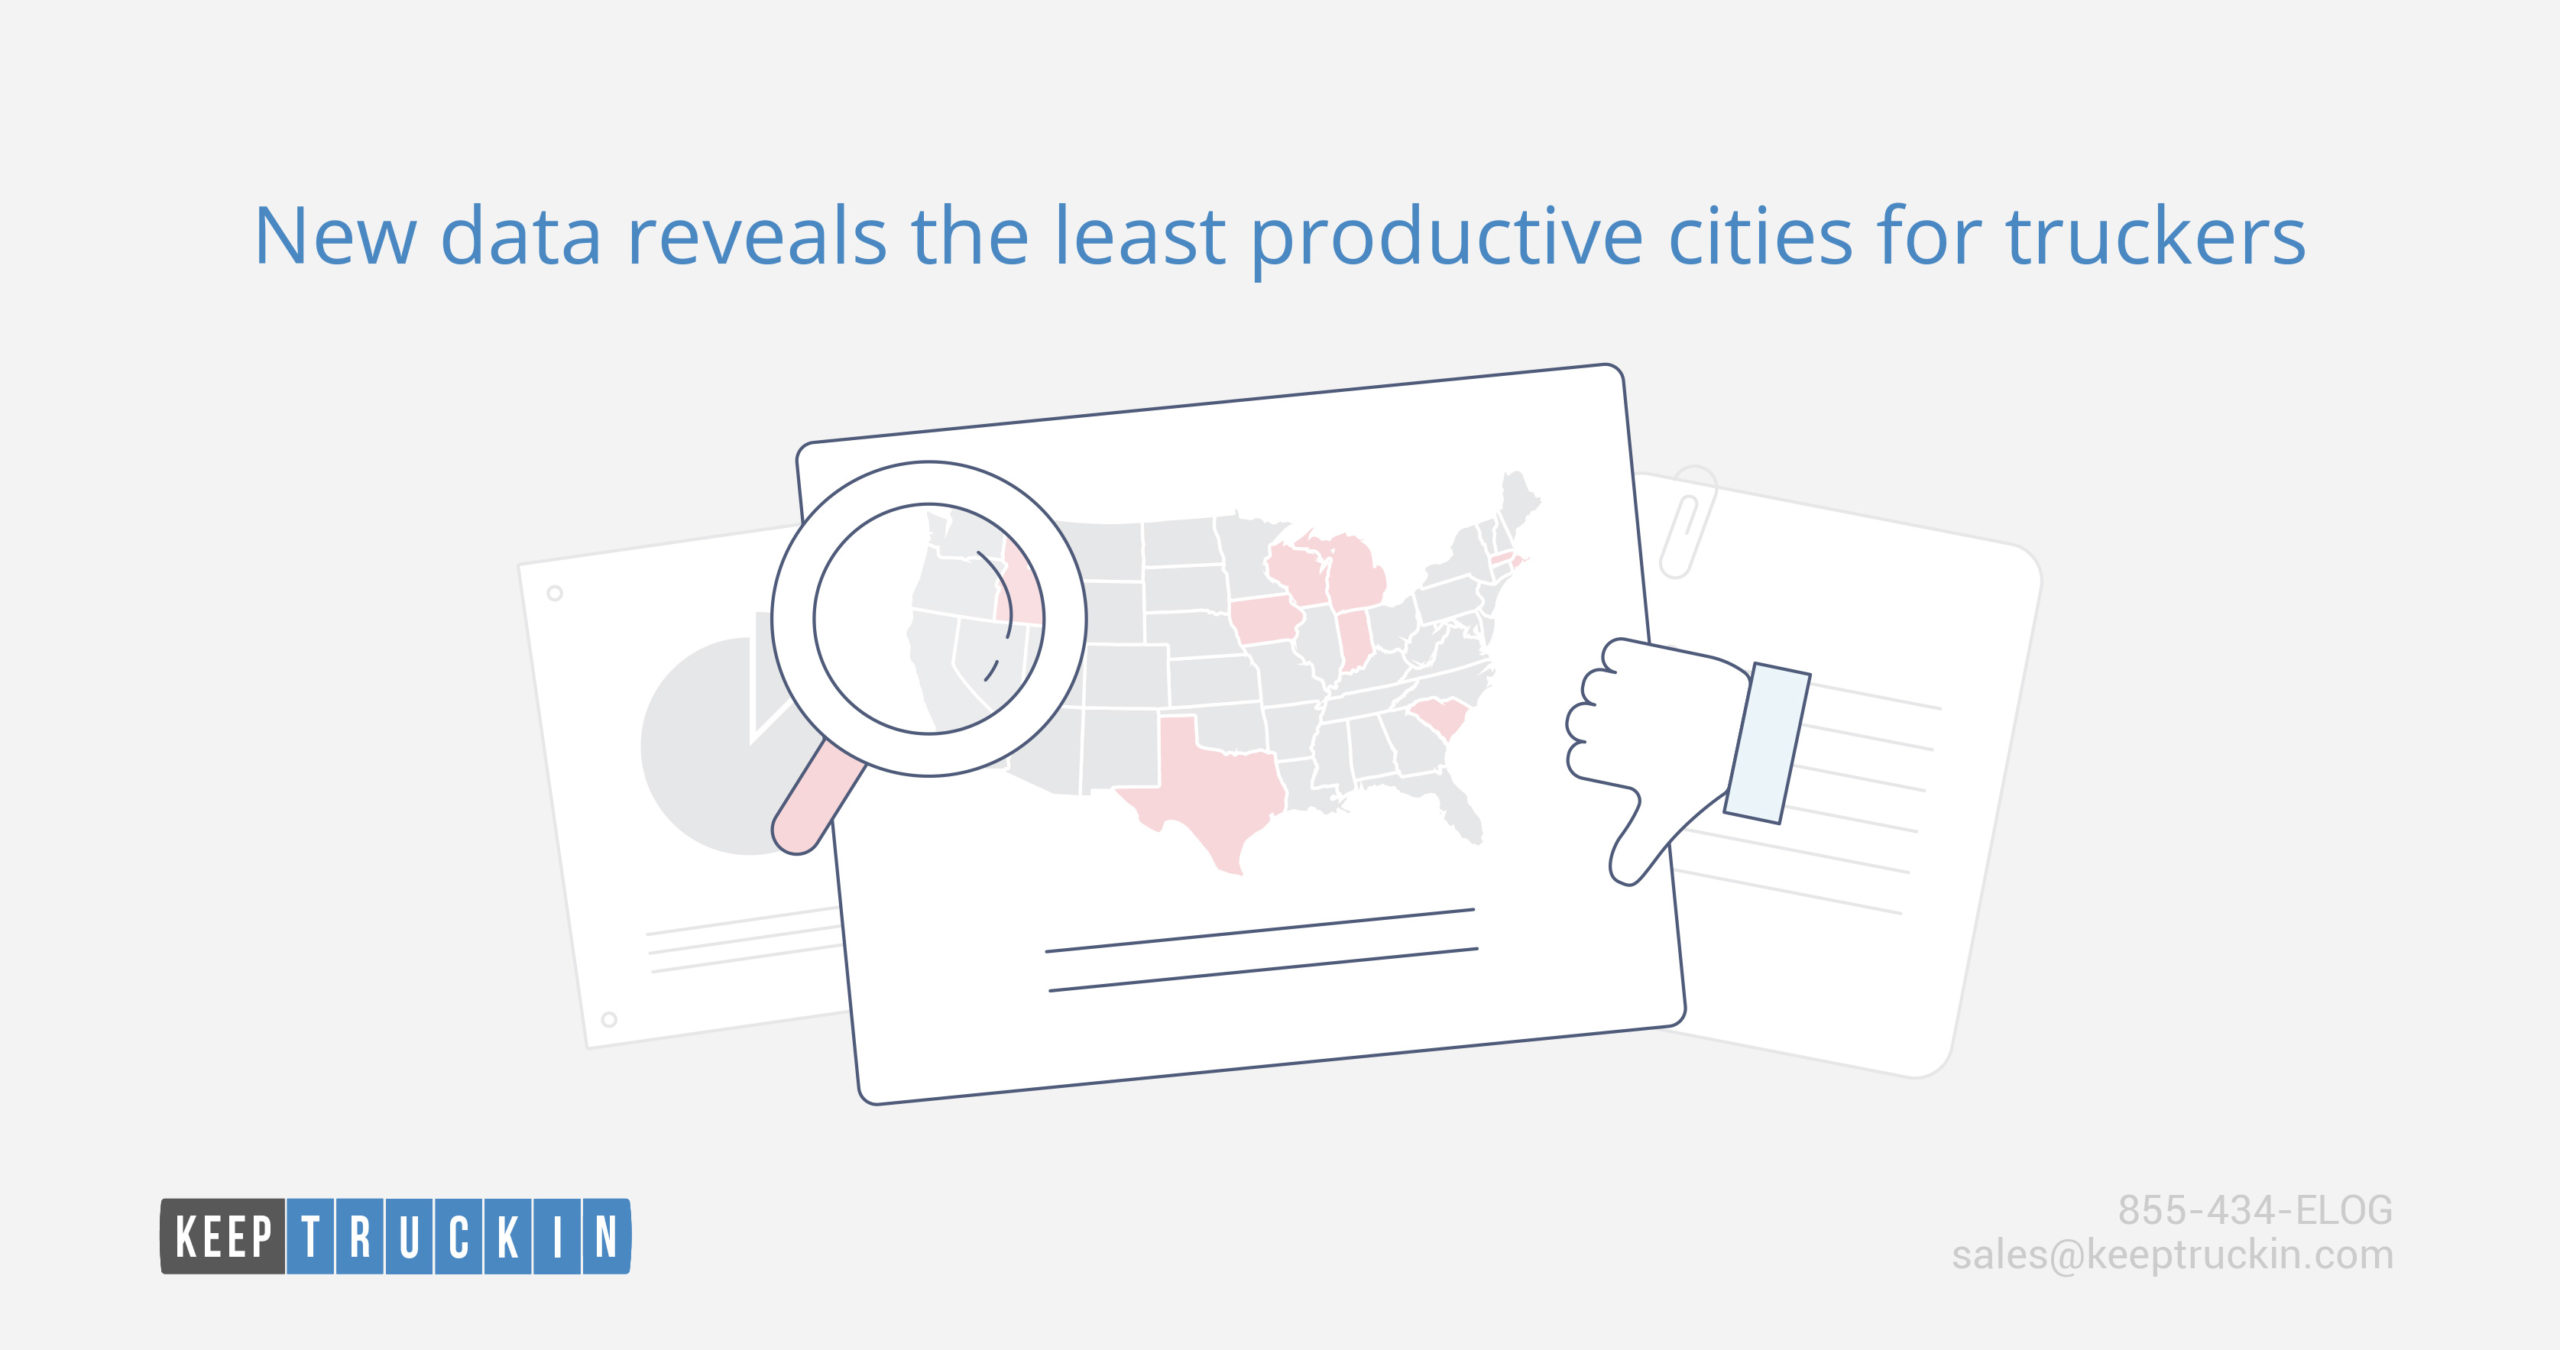 New data reveals the least productive cities for truckers